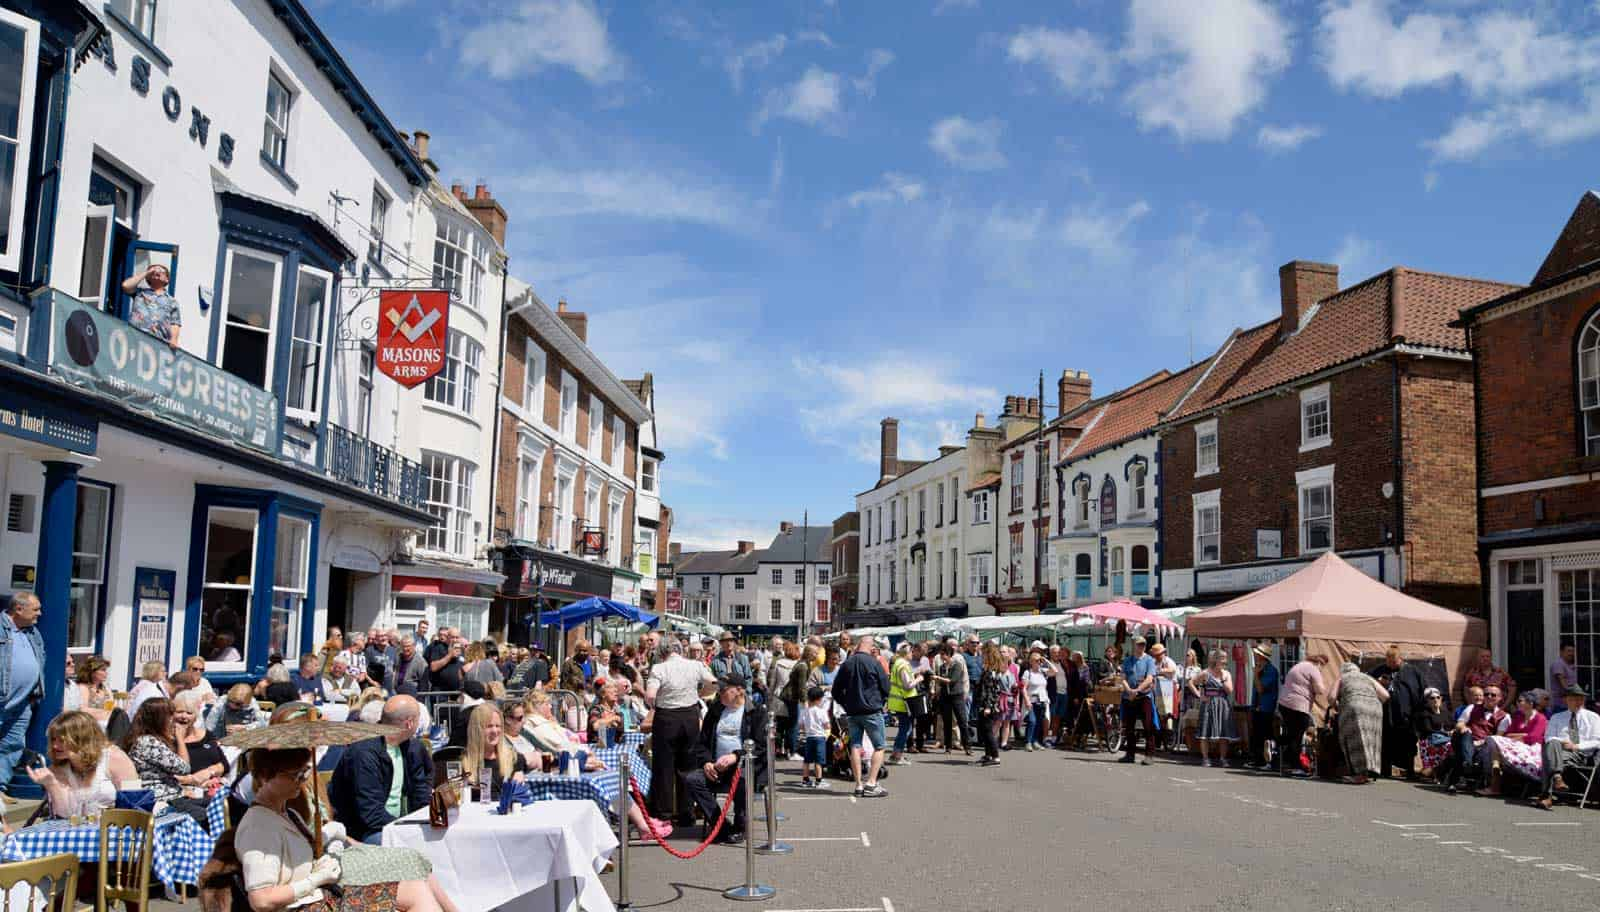 Vintage day 2019 crowds by Chris Smith